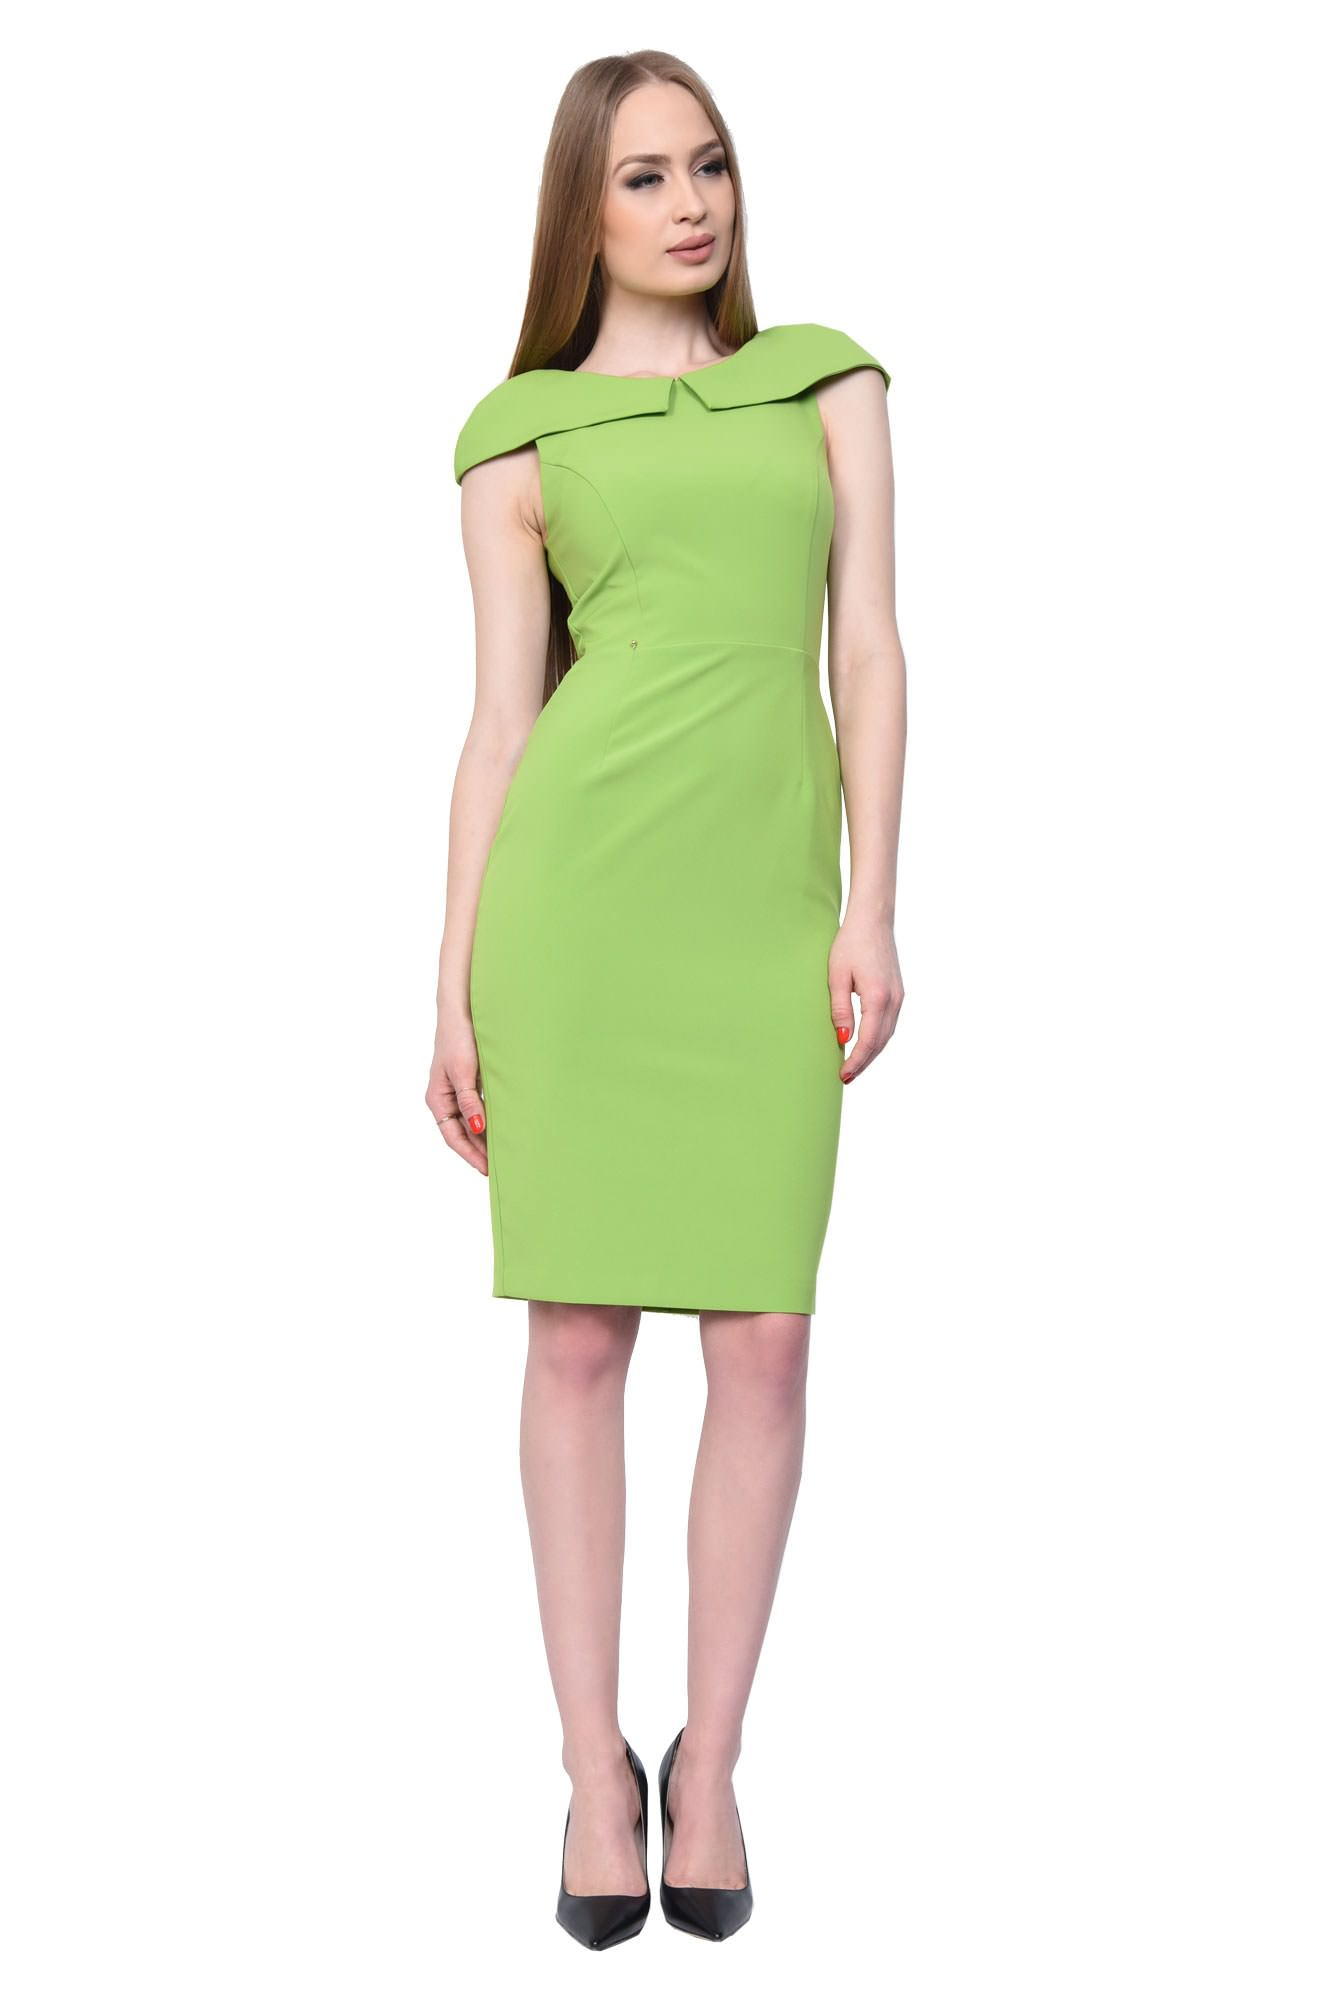 0 - ROCHIE OFFICE CONICA R 262-VERDE